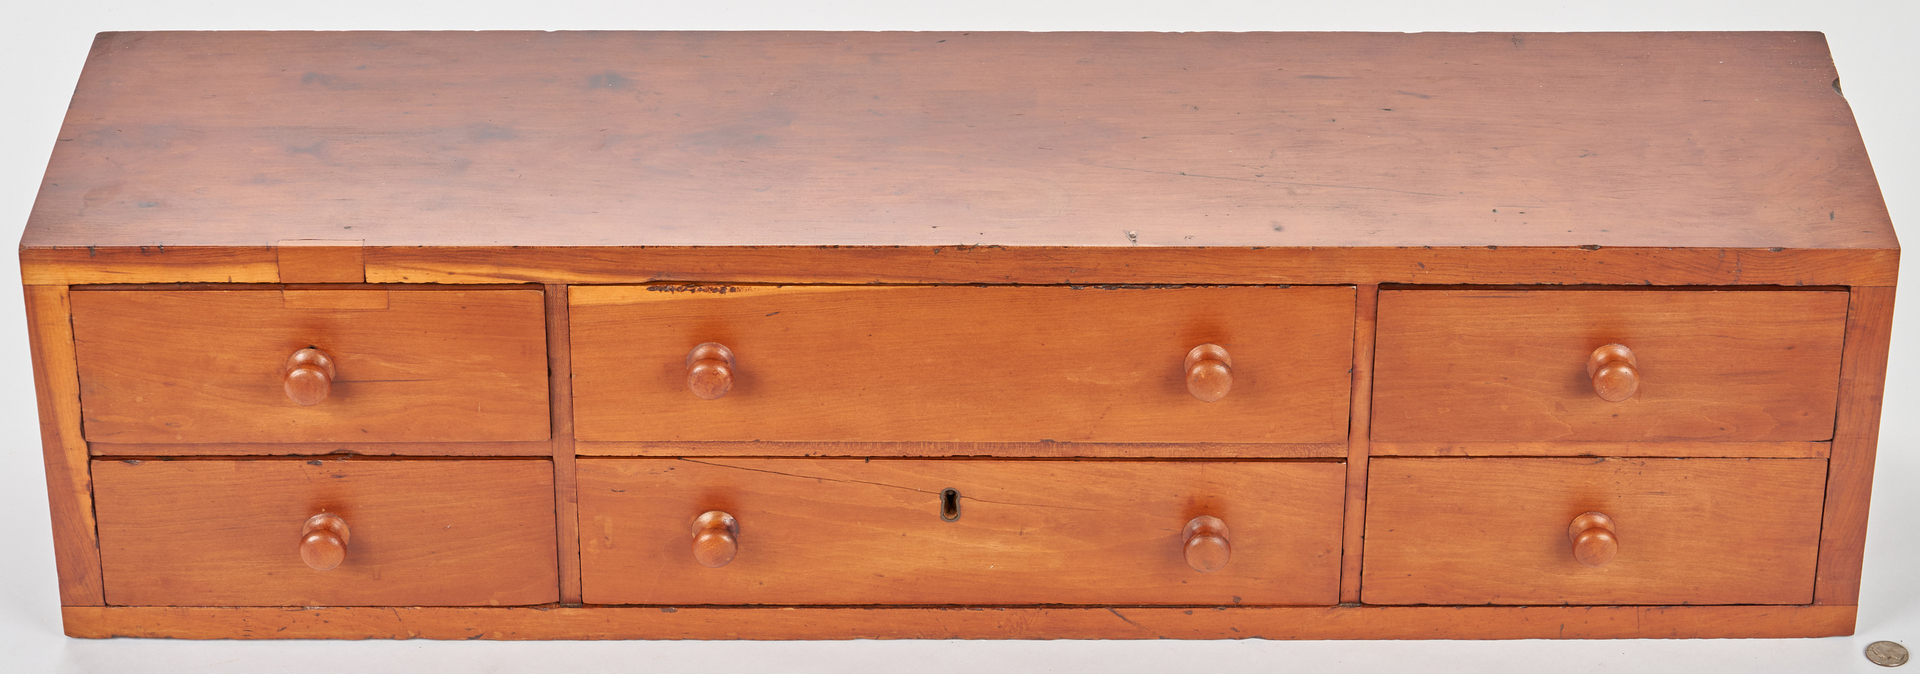 Lot 879: TN 6 Drawer Cabinet & Hanging Wall Shelf